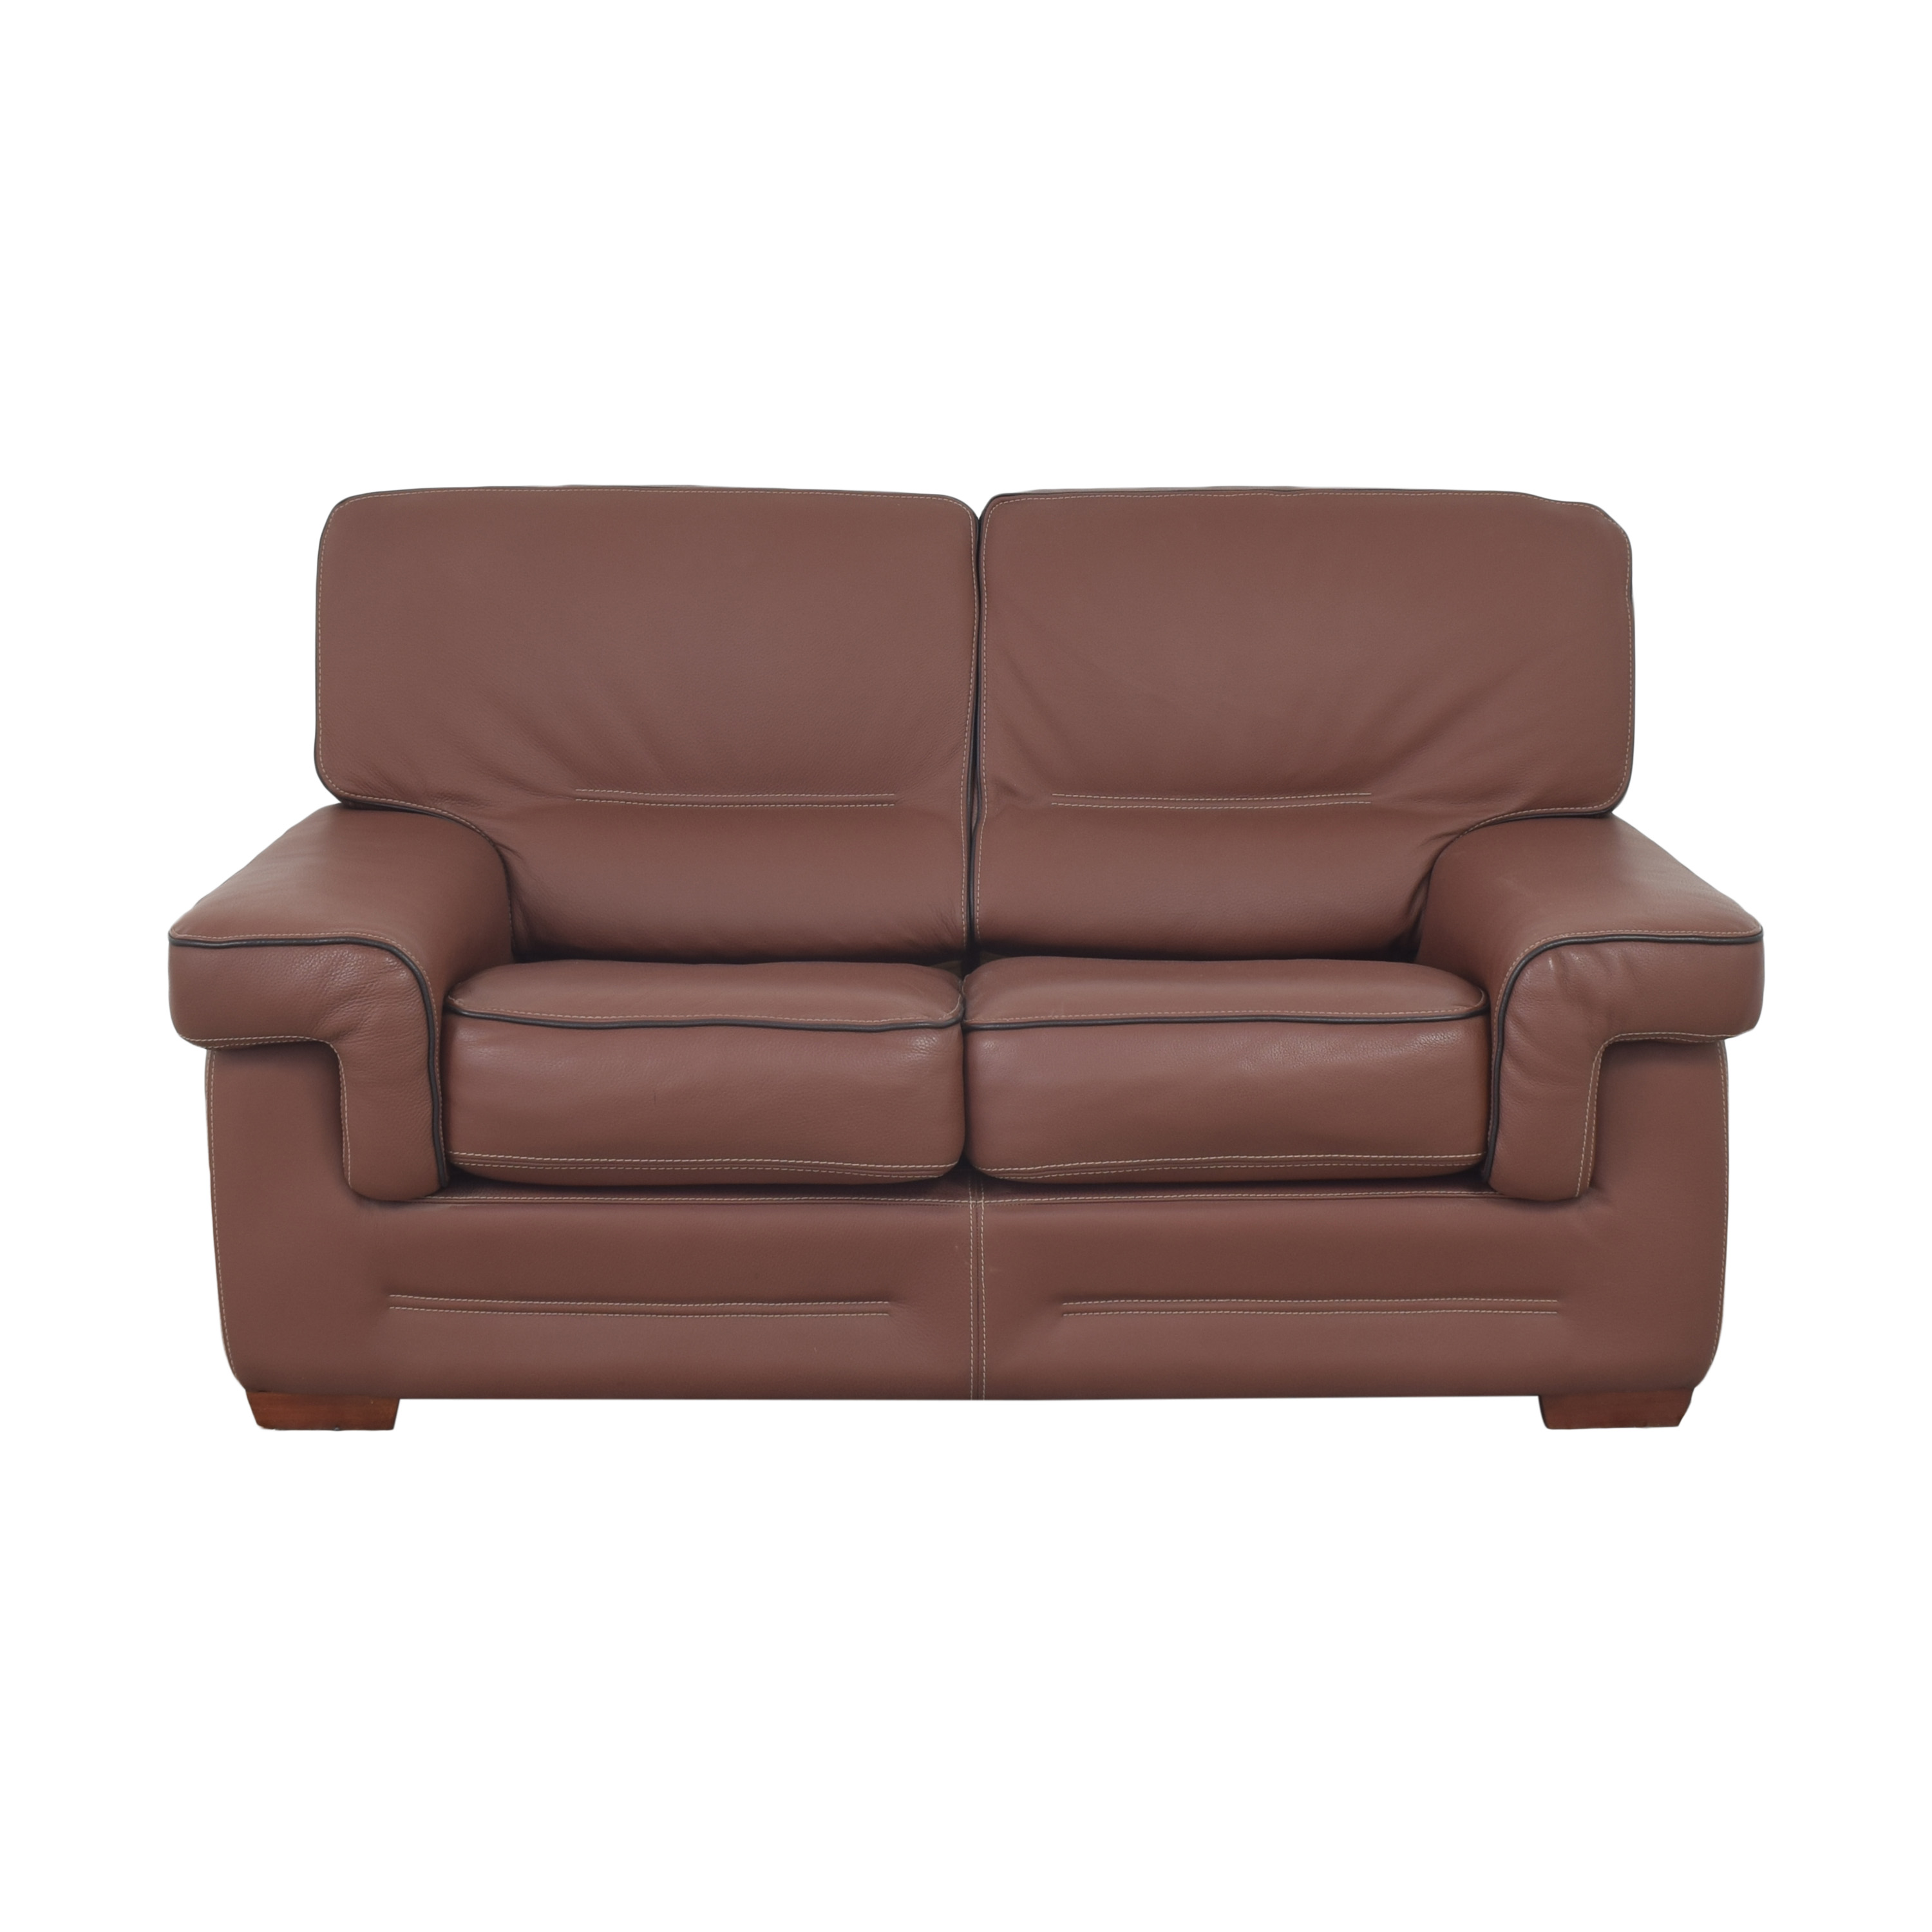 Firenze Design Firenze Design Loveseat price